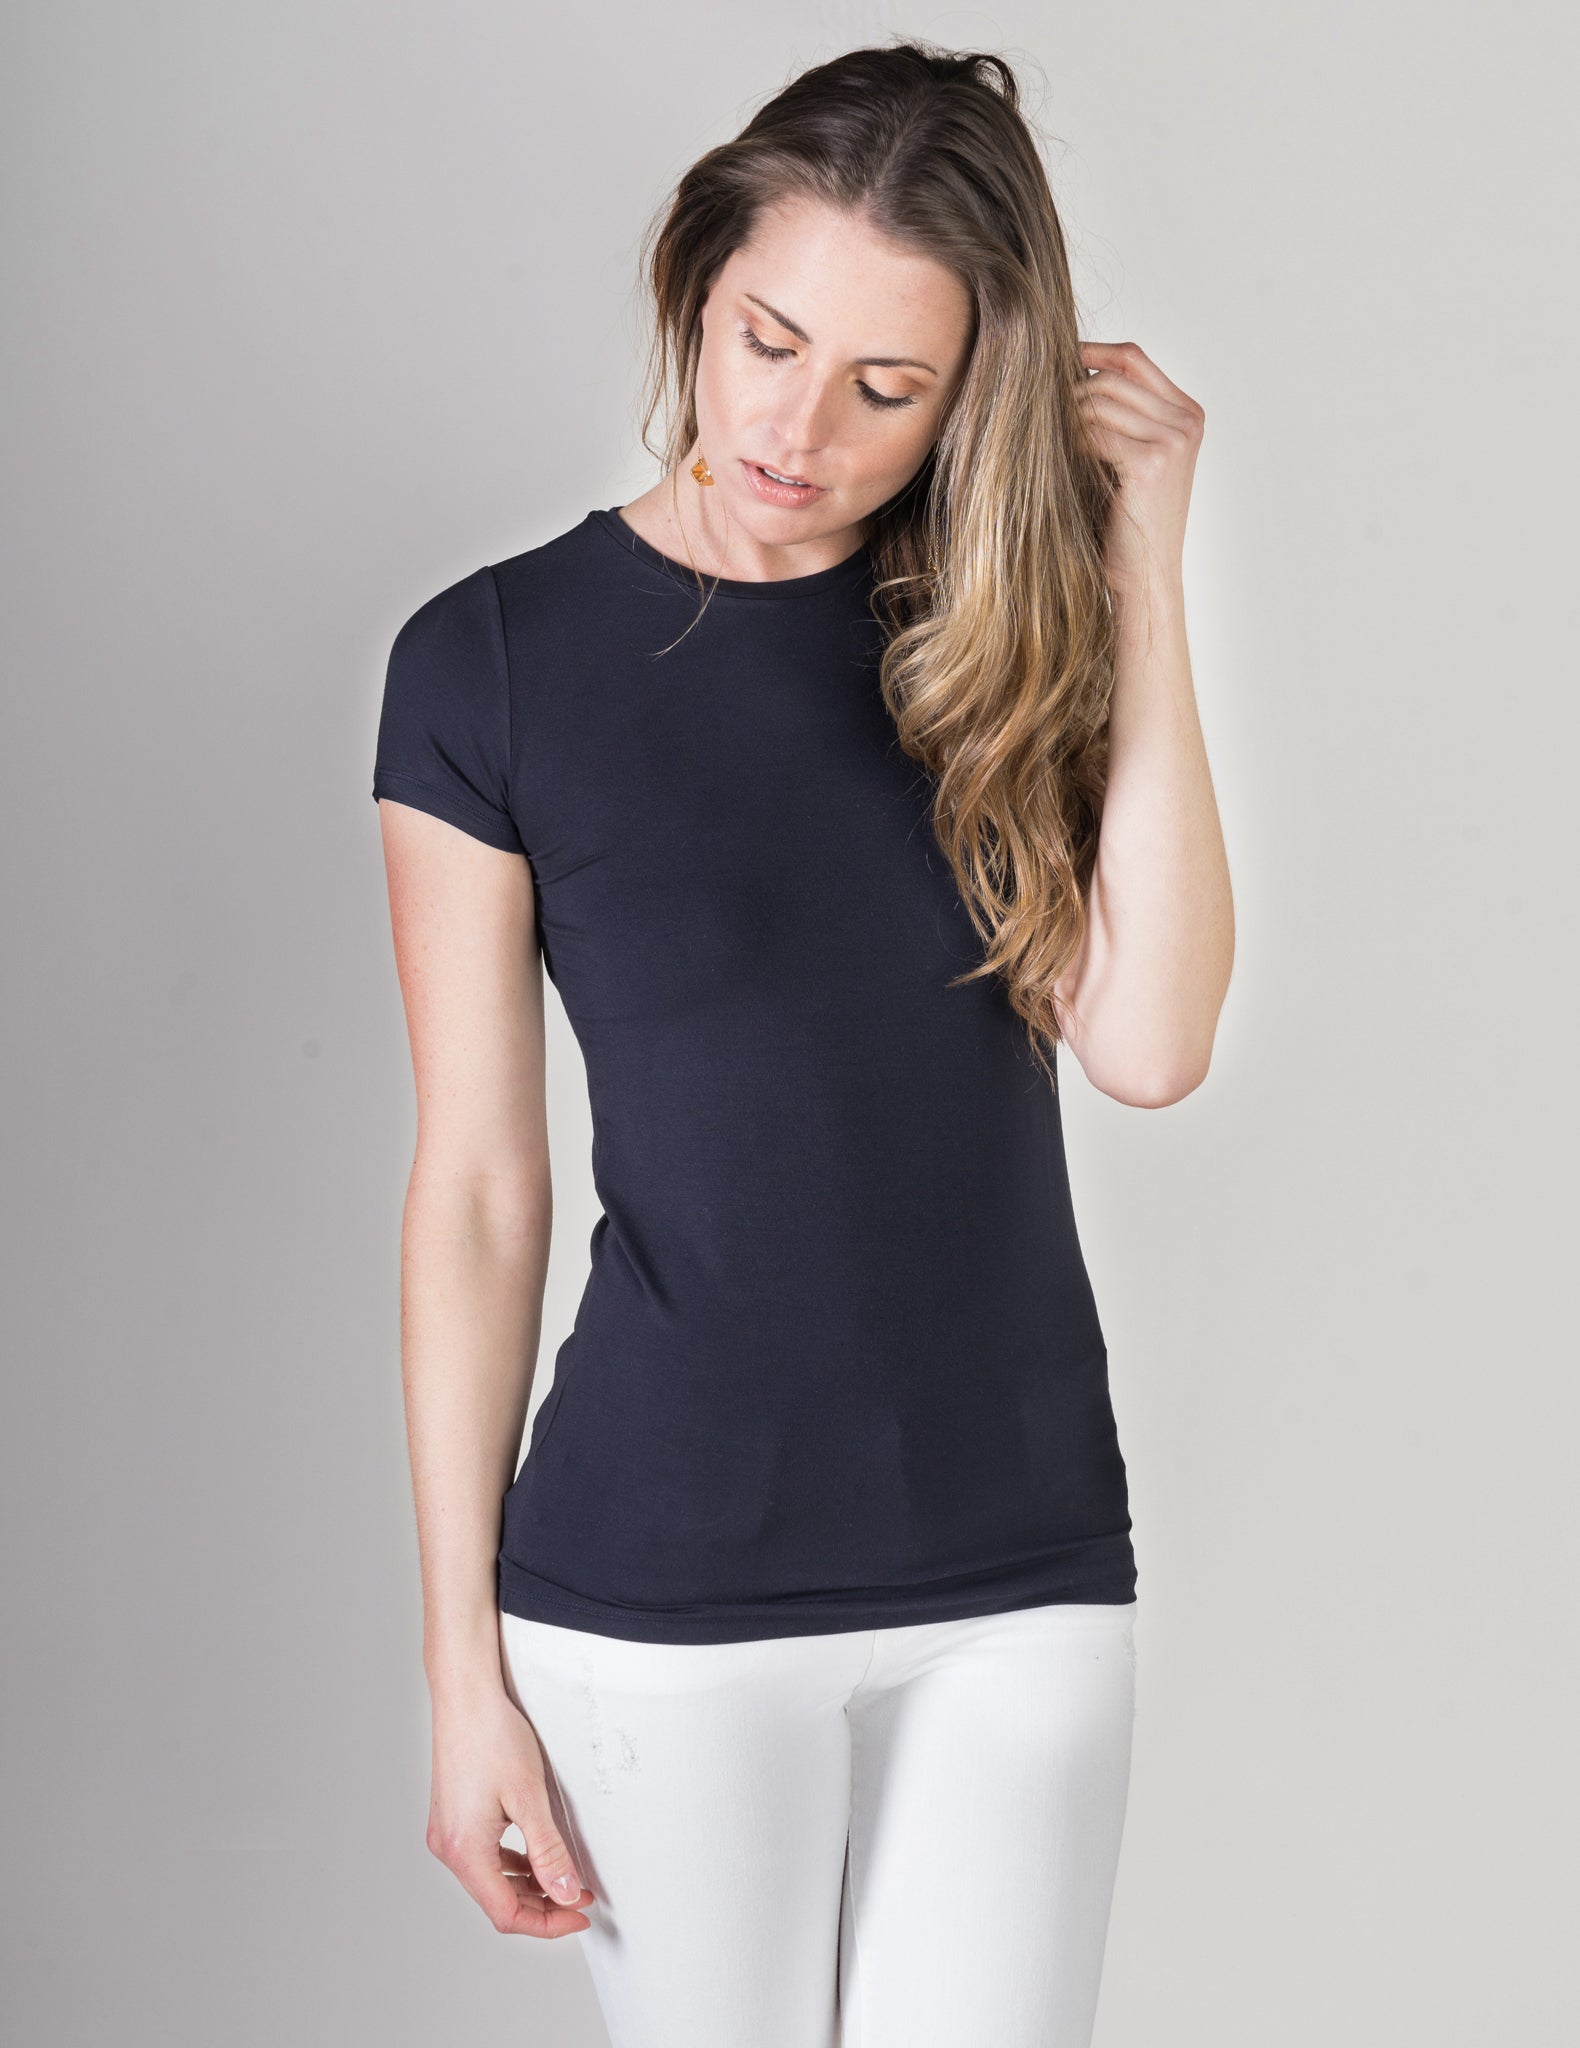 Majestic Short Sleeve Crewneck Tee with Finished Trim in Navy